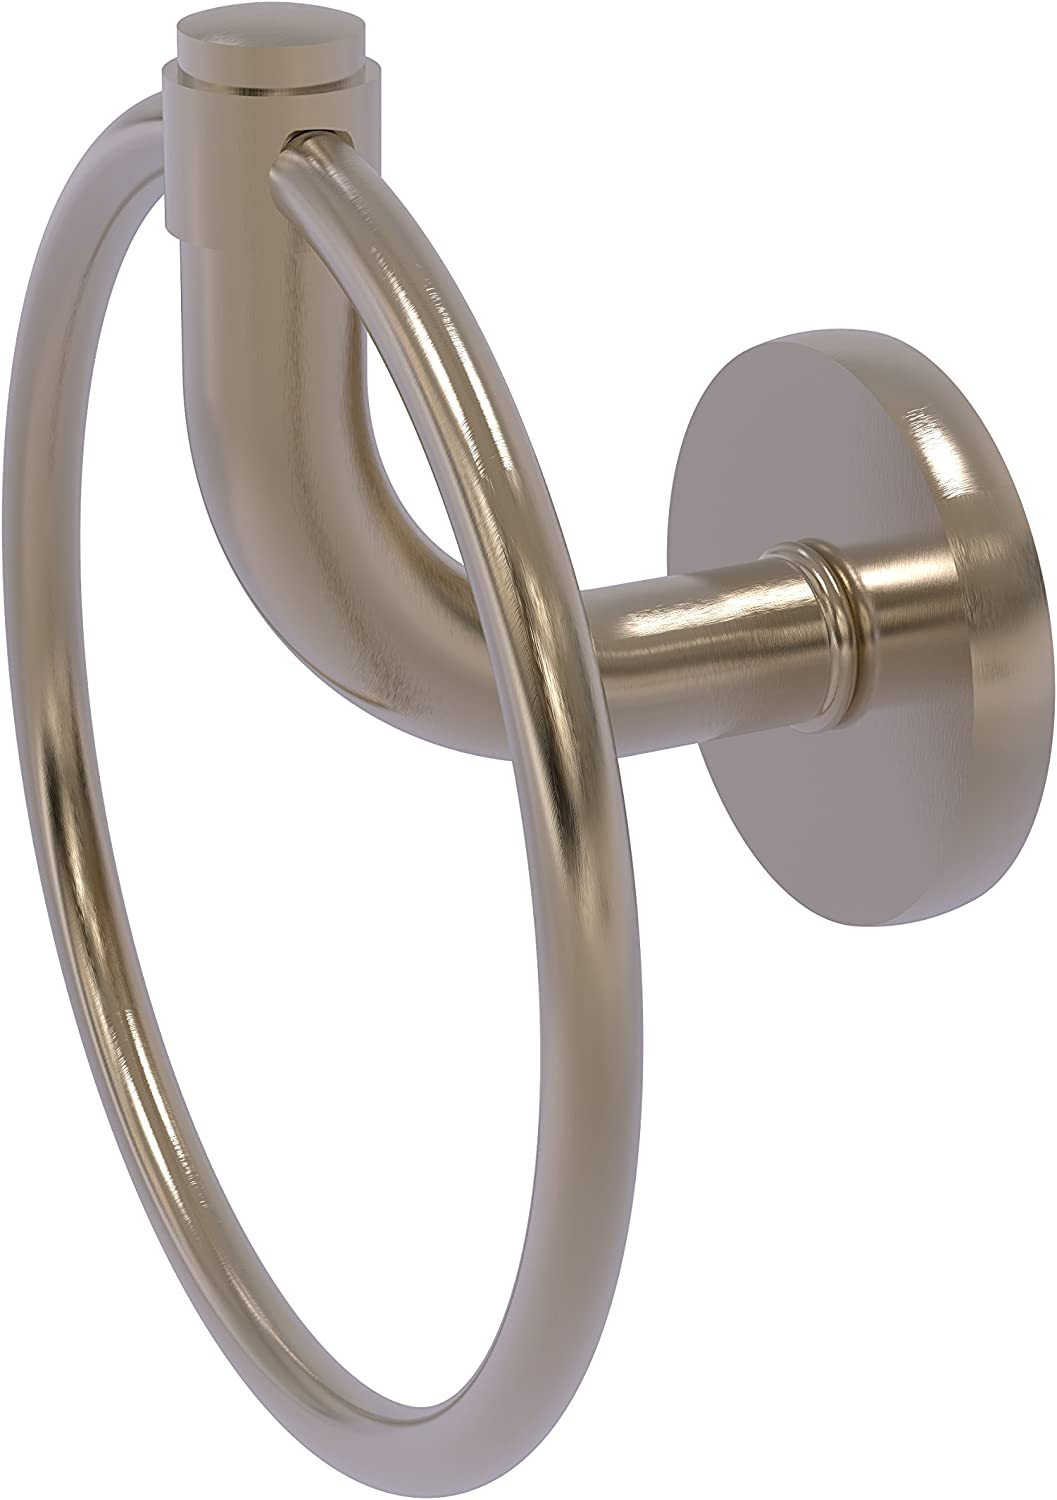 Allied Brass Remi Collection Towel Ring, RM-16-PEW